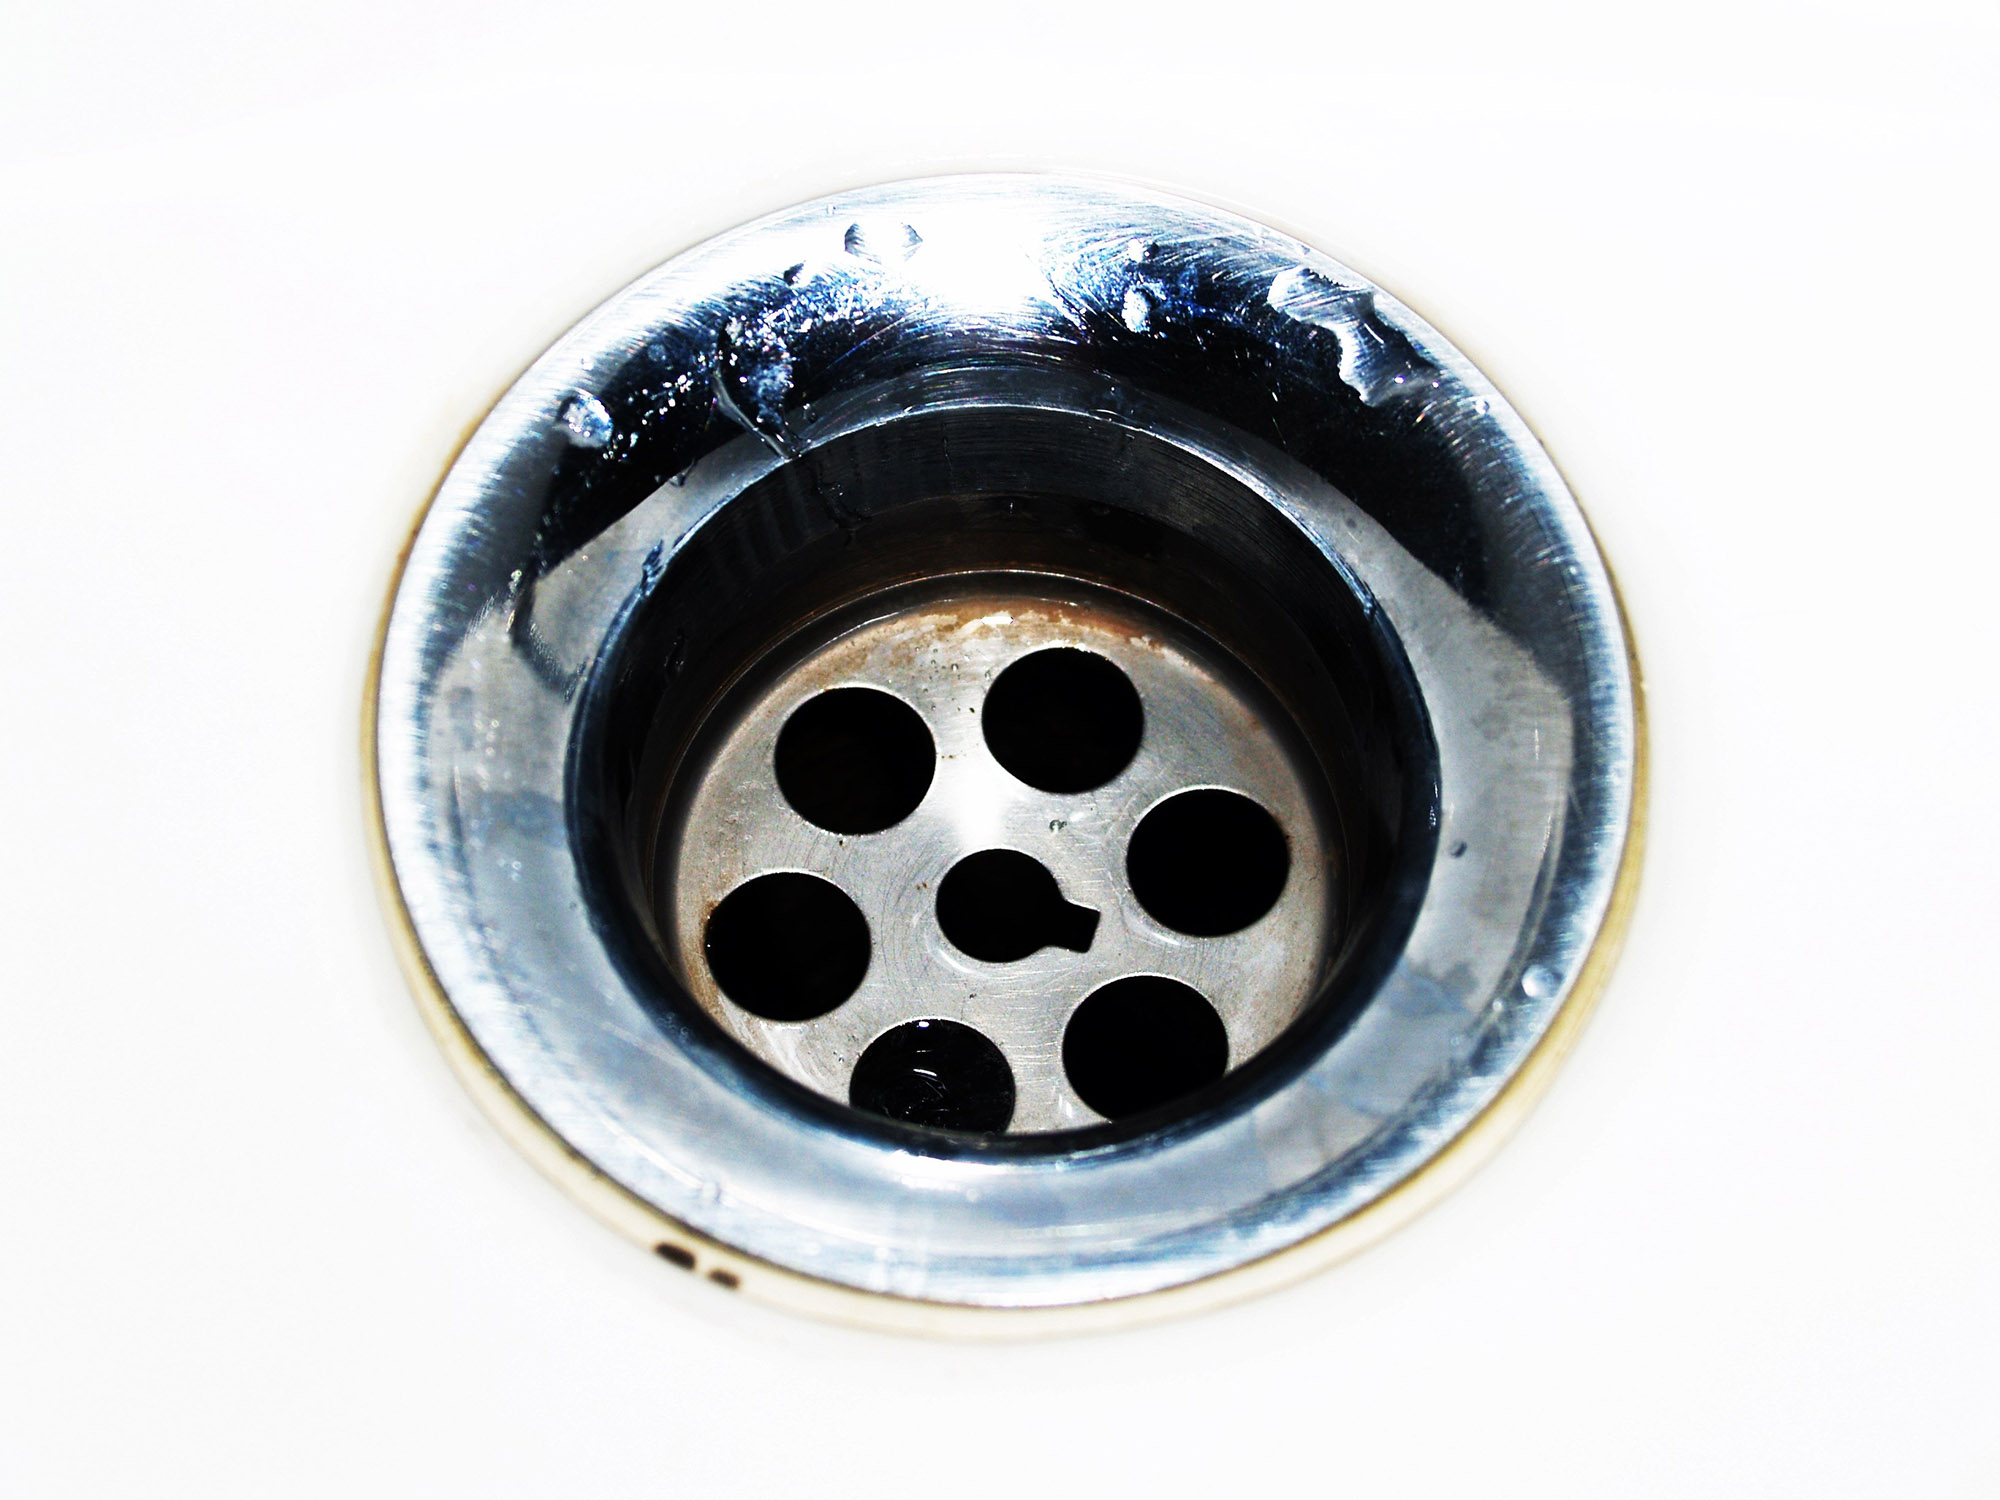 What Are The Tools Used To Fix The Drain?